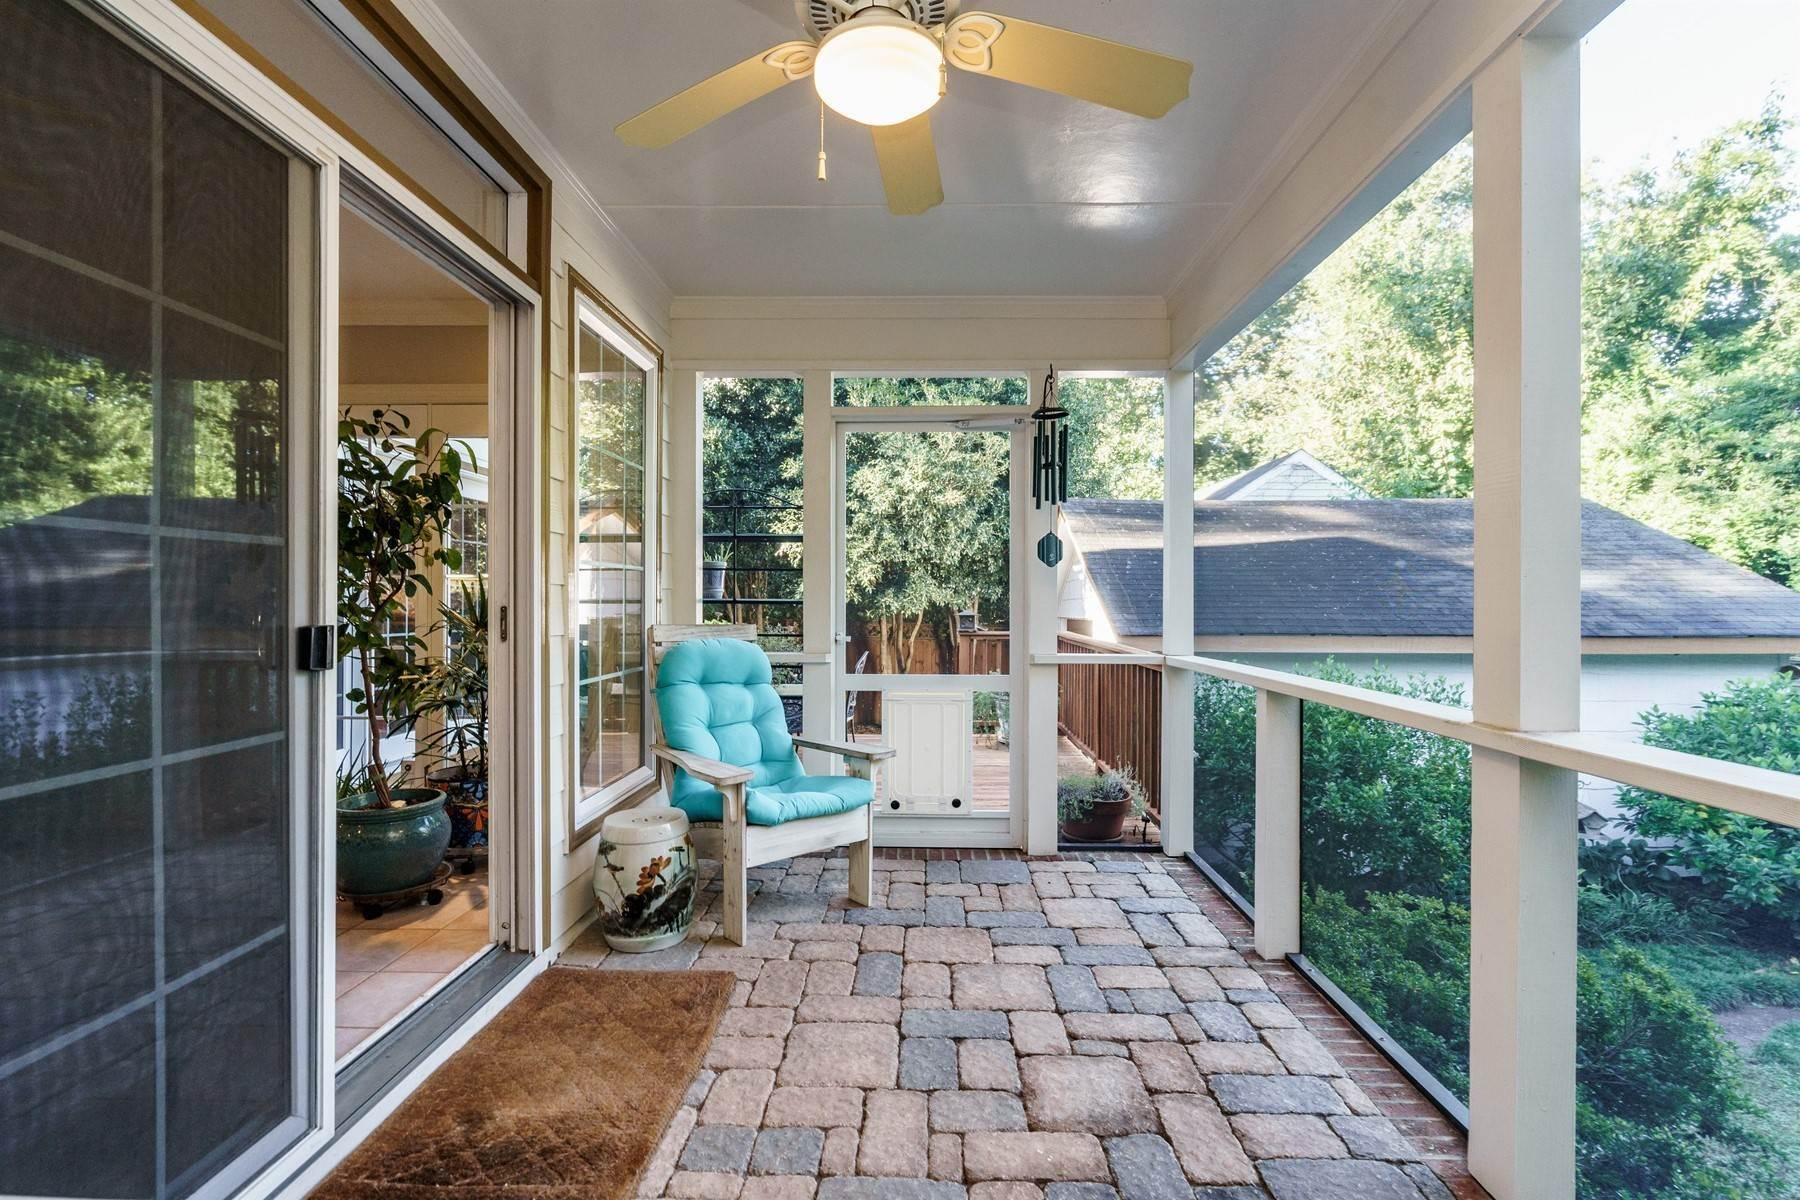 31. Single Family Homes for Sale at Storybook Inside-the-Beltline 2213 St Mary's St Raleigh, North Carolina 27608 United States